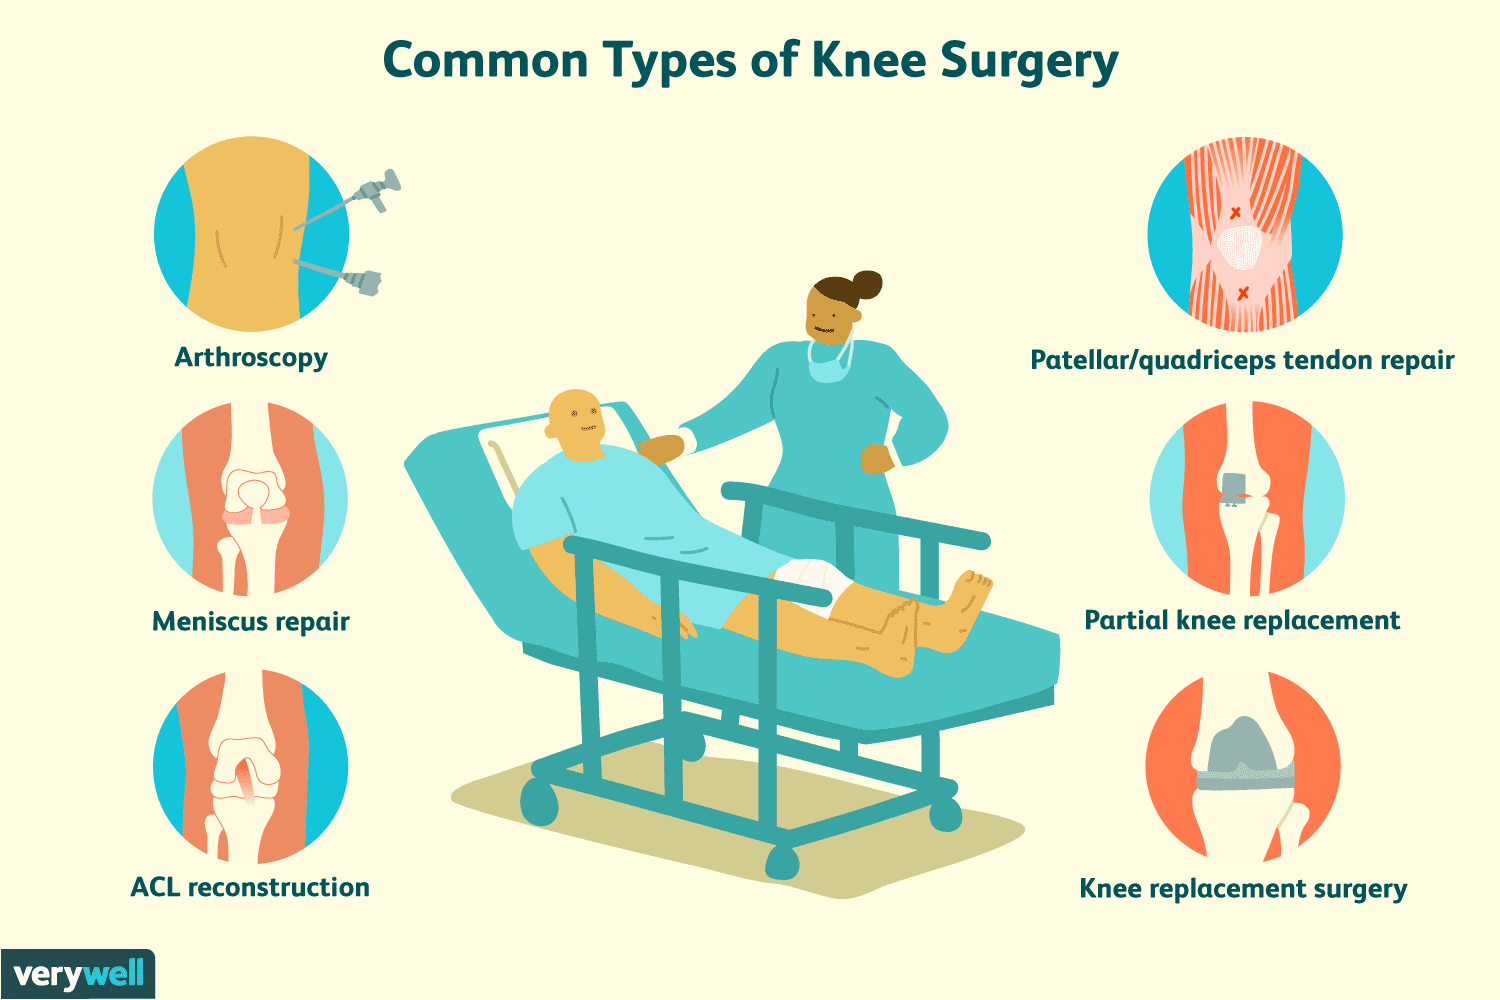 Surgery Treatments for Knee Pain and Injuries